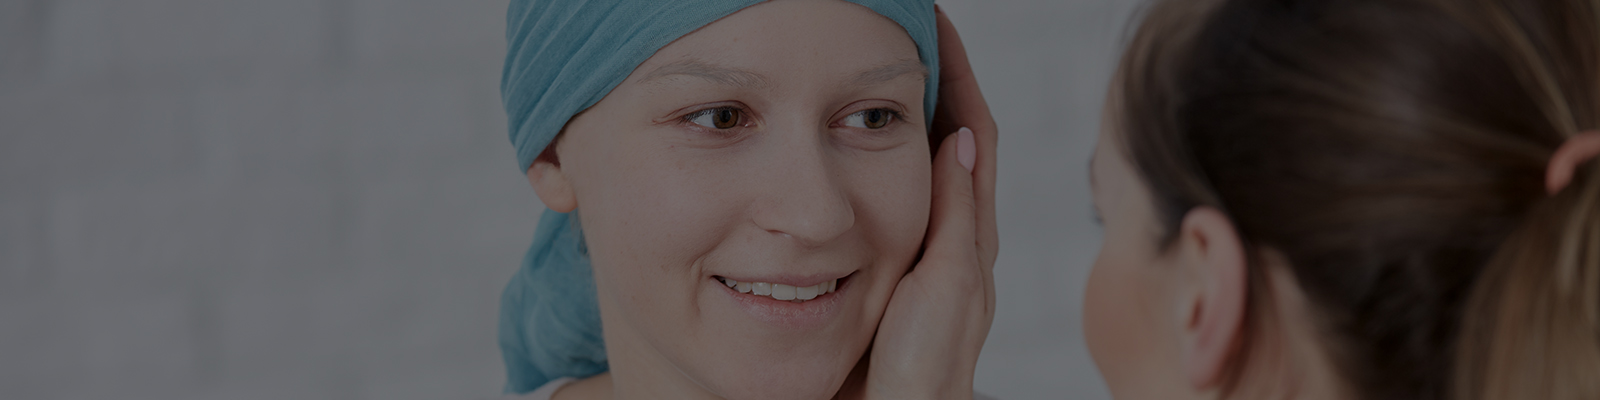 cancer specialist in bangalore